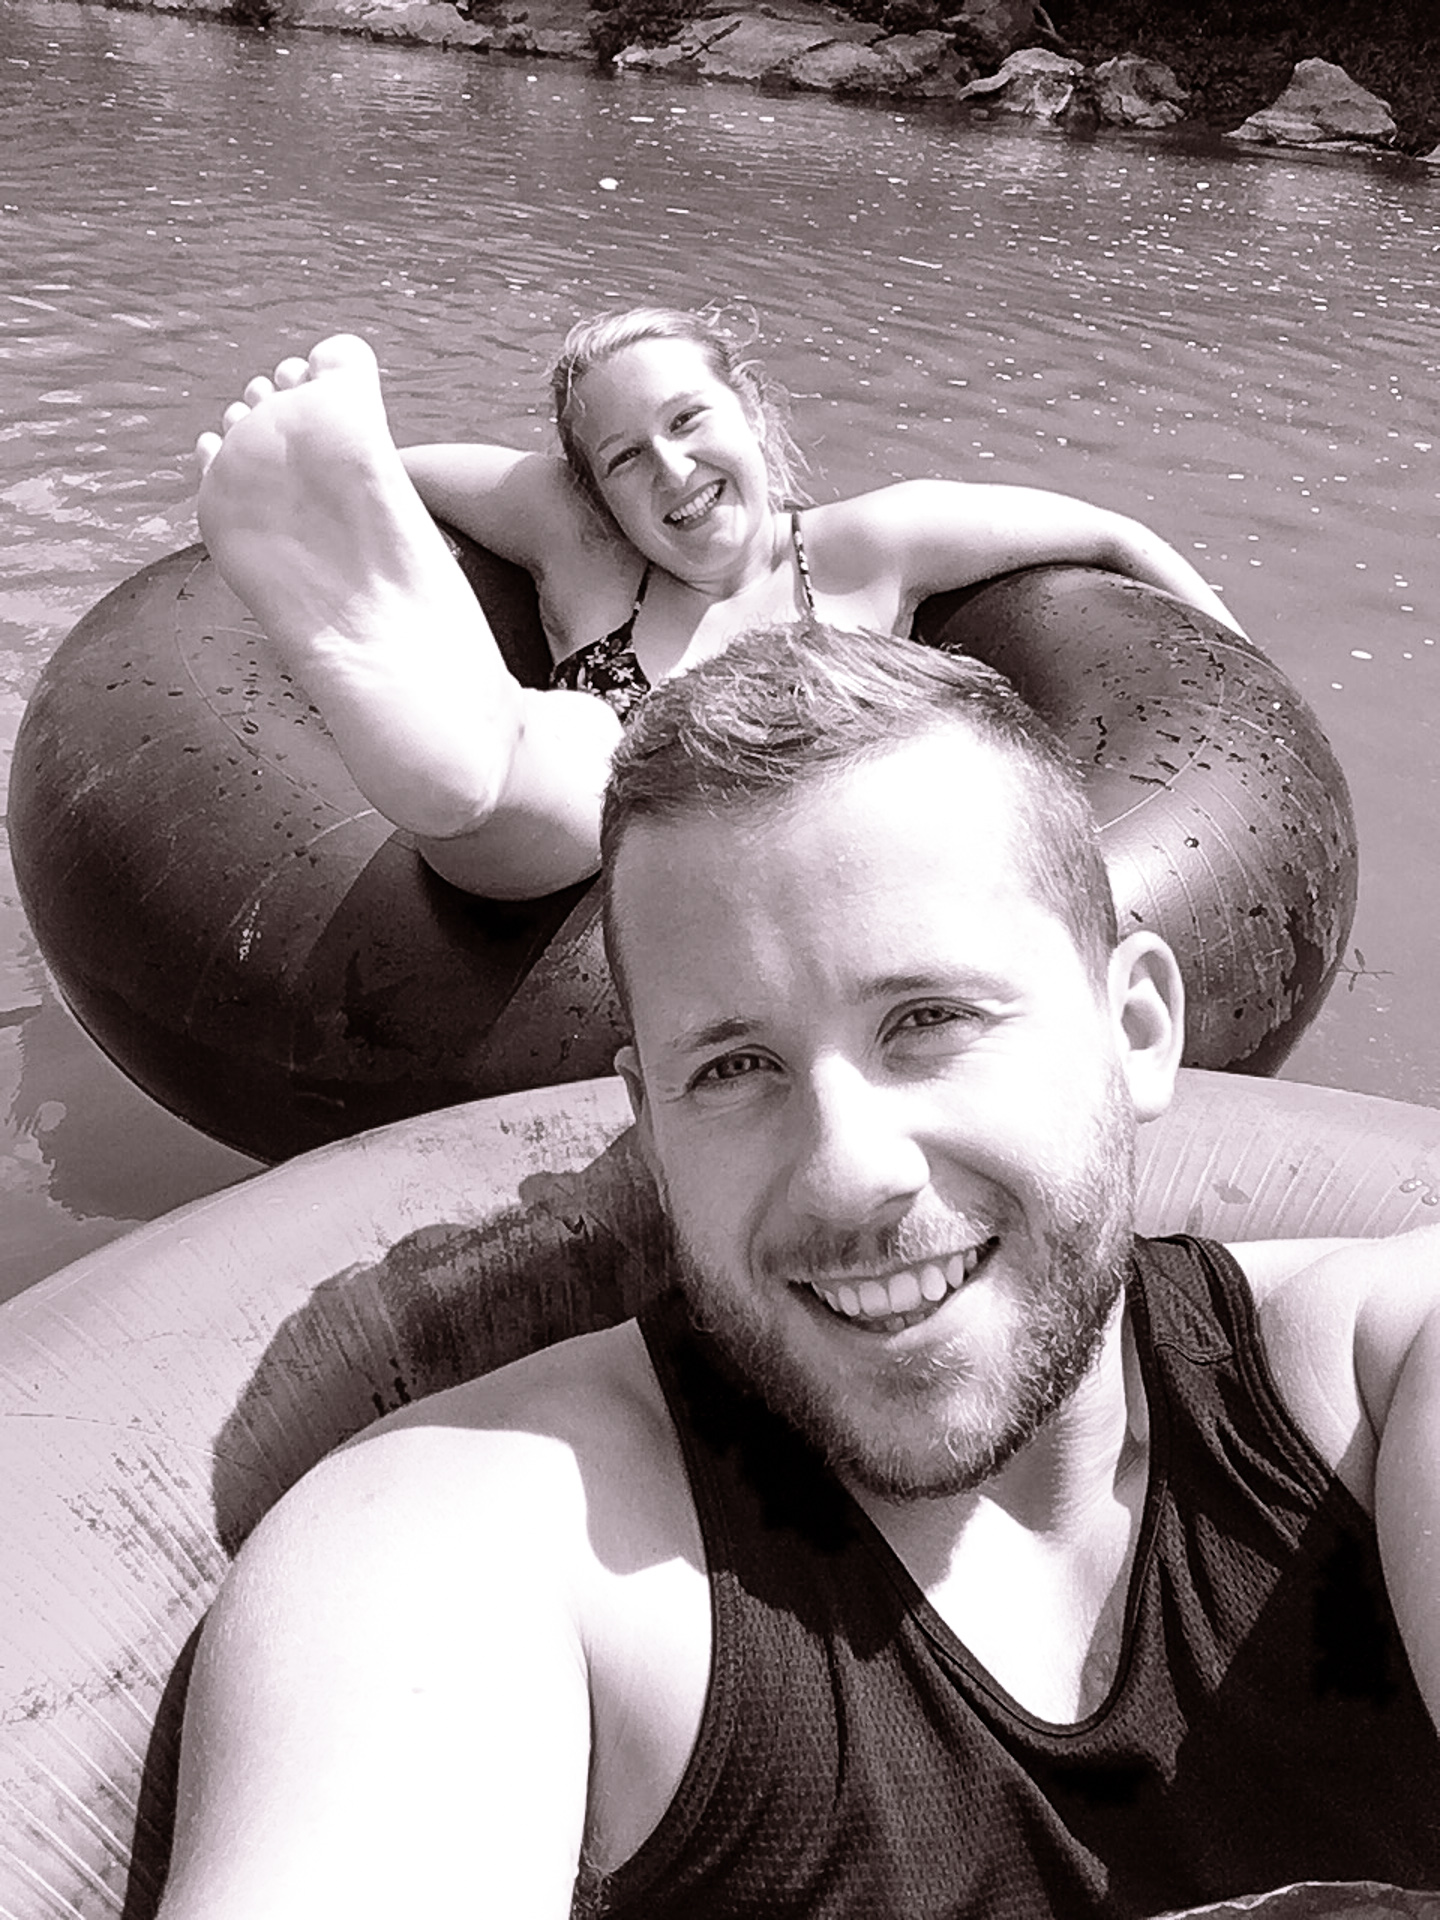 Alex and Alis Digital Nomads Float on River in Vang Vieng